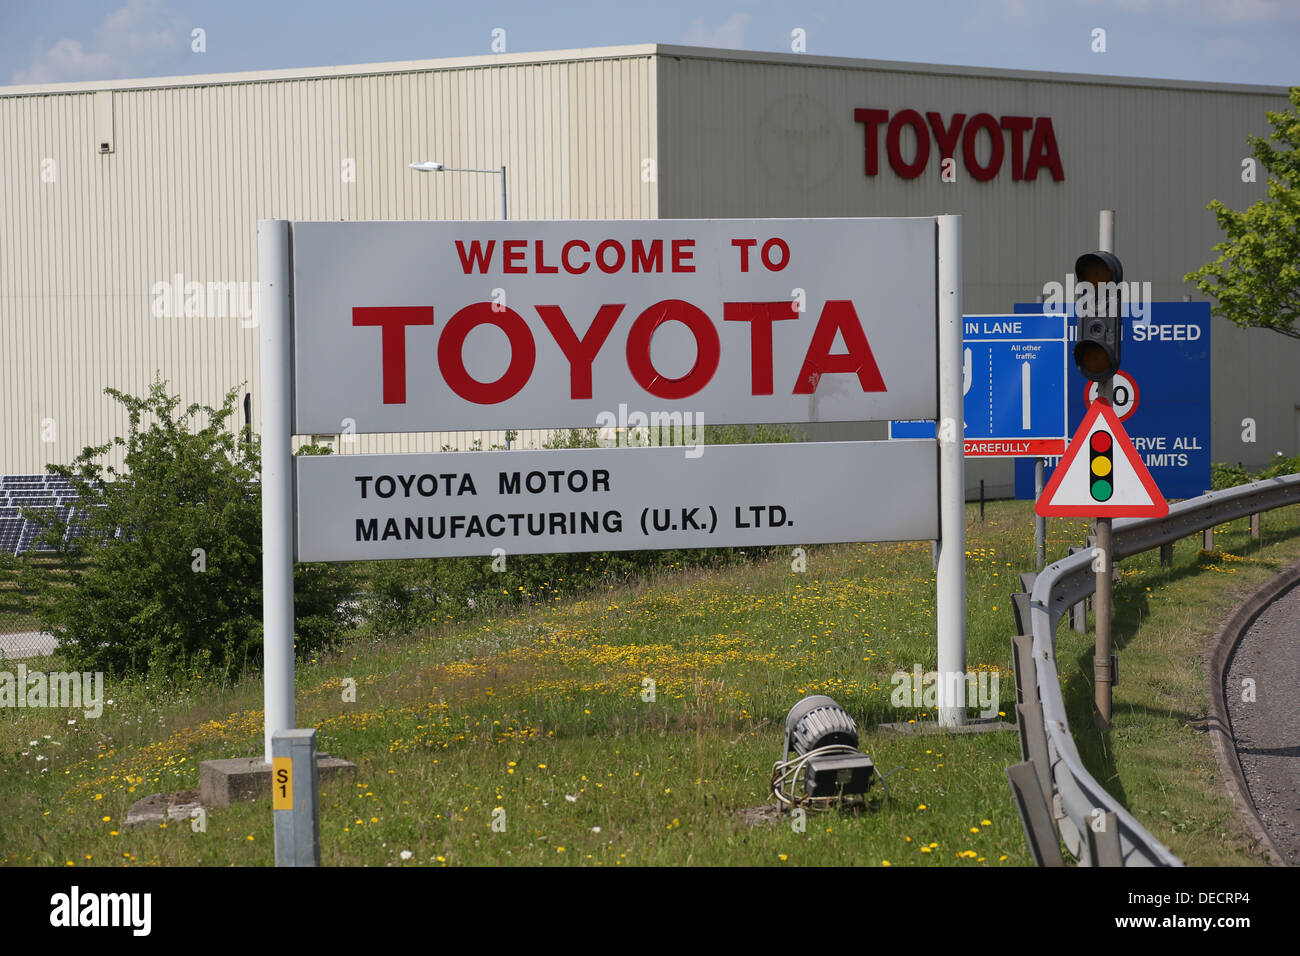 toyota factory - derby uk - Stock Image